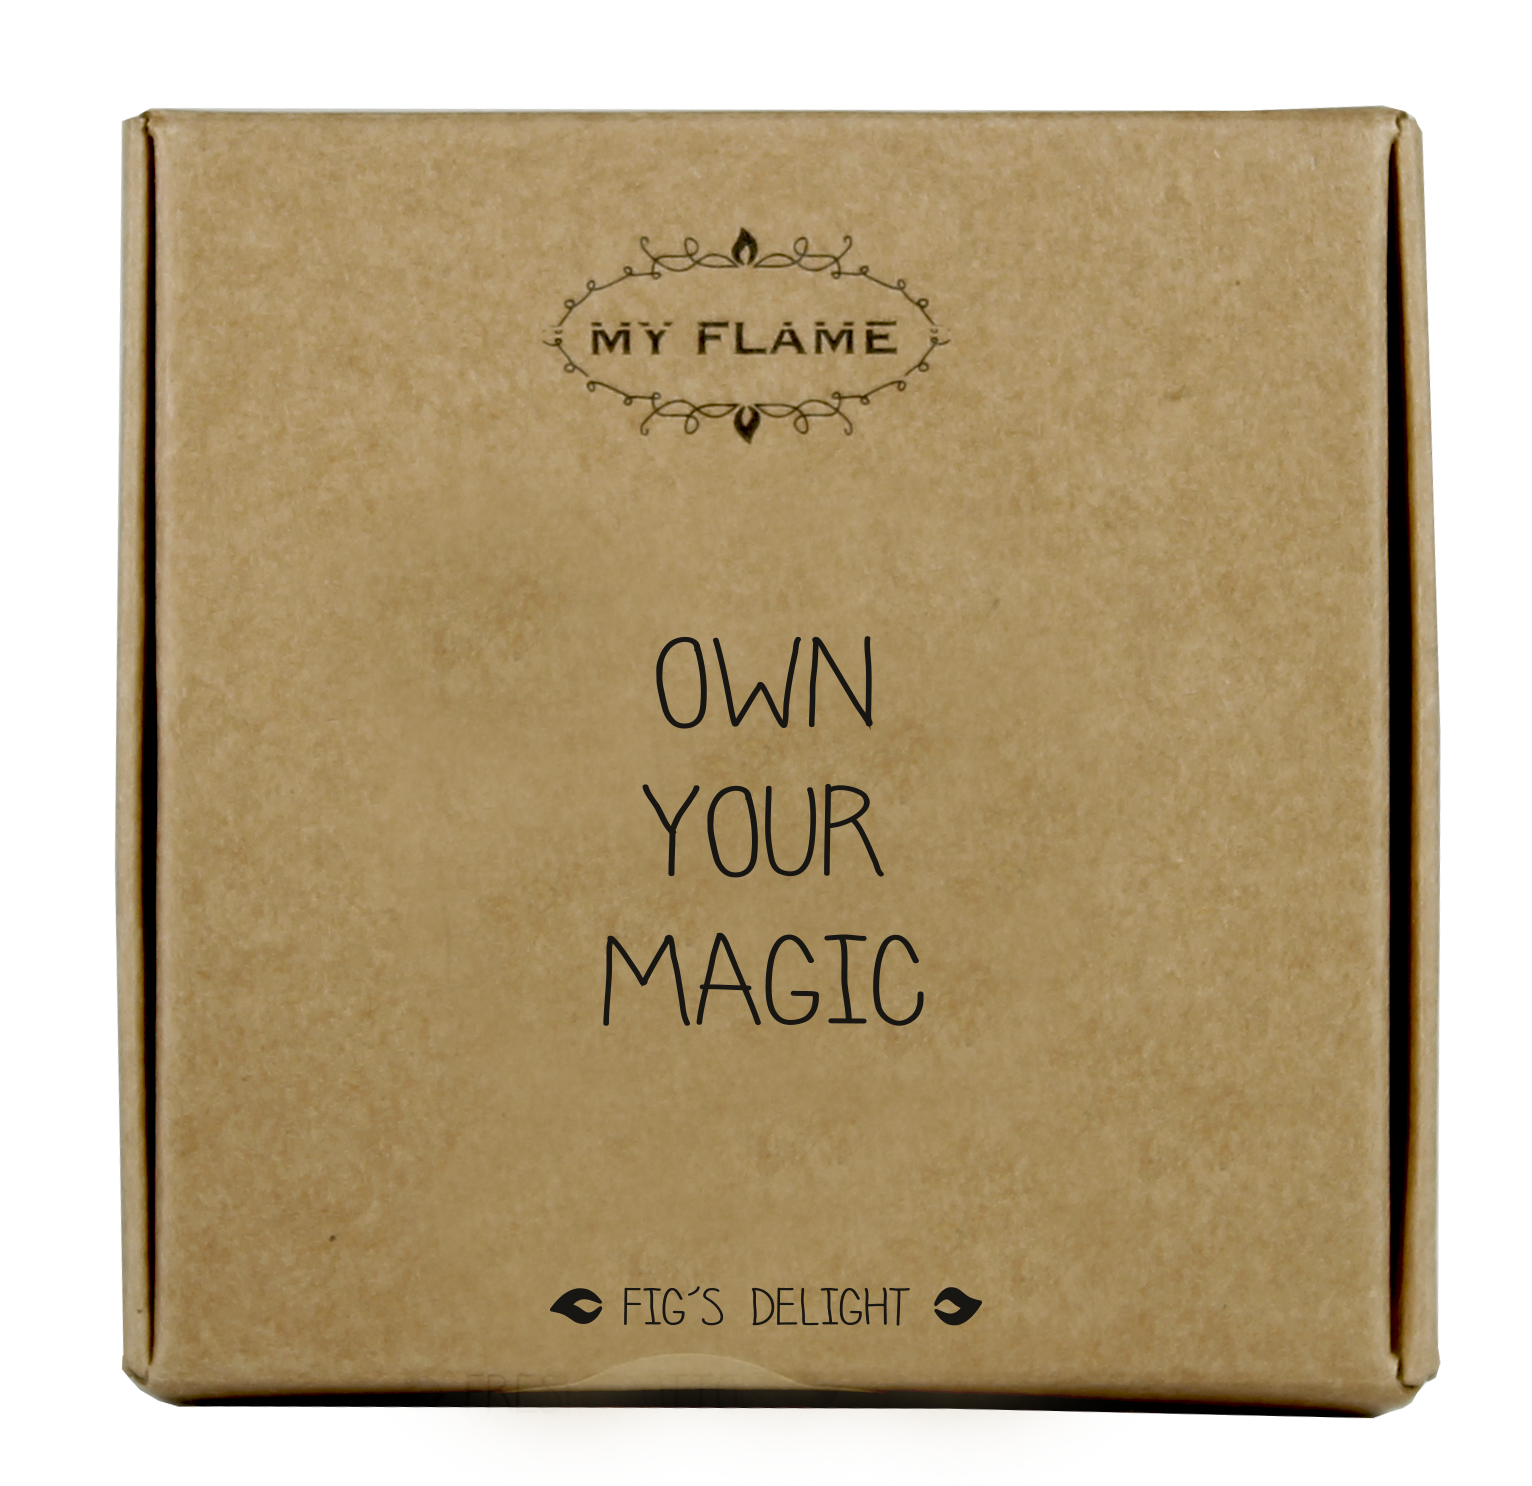 My Flame Lifestyle SCENTED HANGER - OWN YOUR MAGIC - SCENT: FIG'S DELIGHT